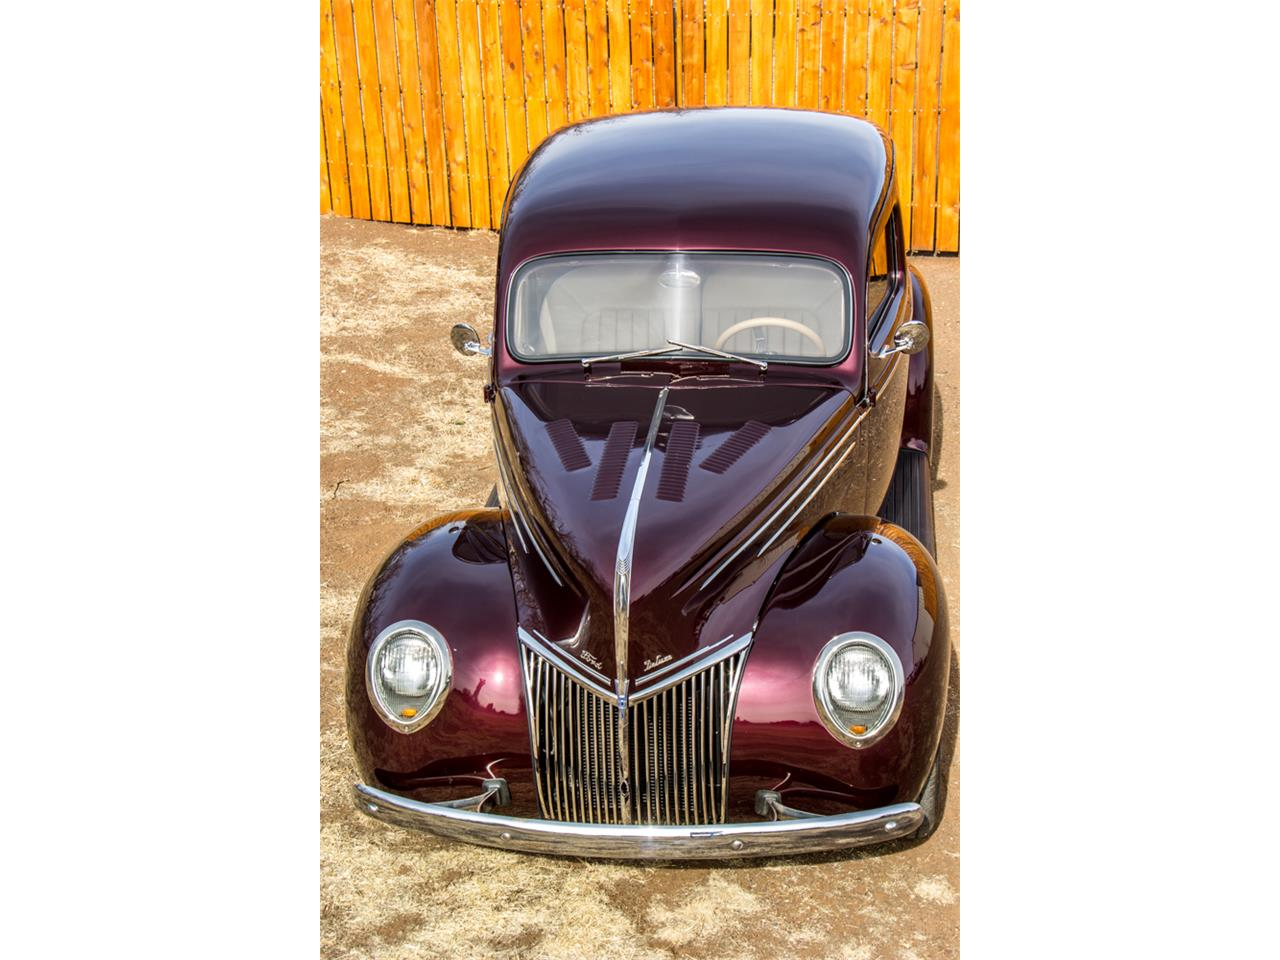 Large Picture of 1939 Ford Tudor - $80,000.00 Offered by a Private Seller - N561